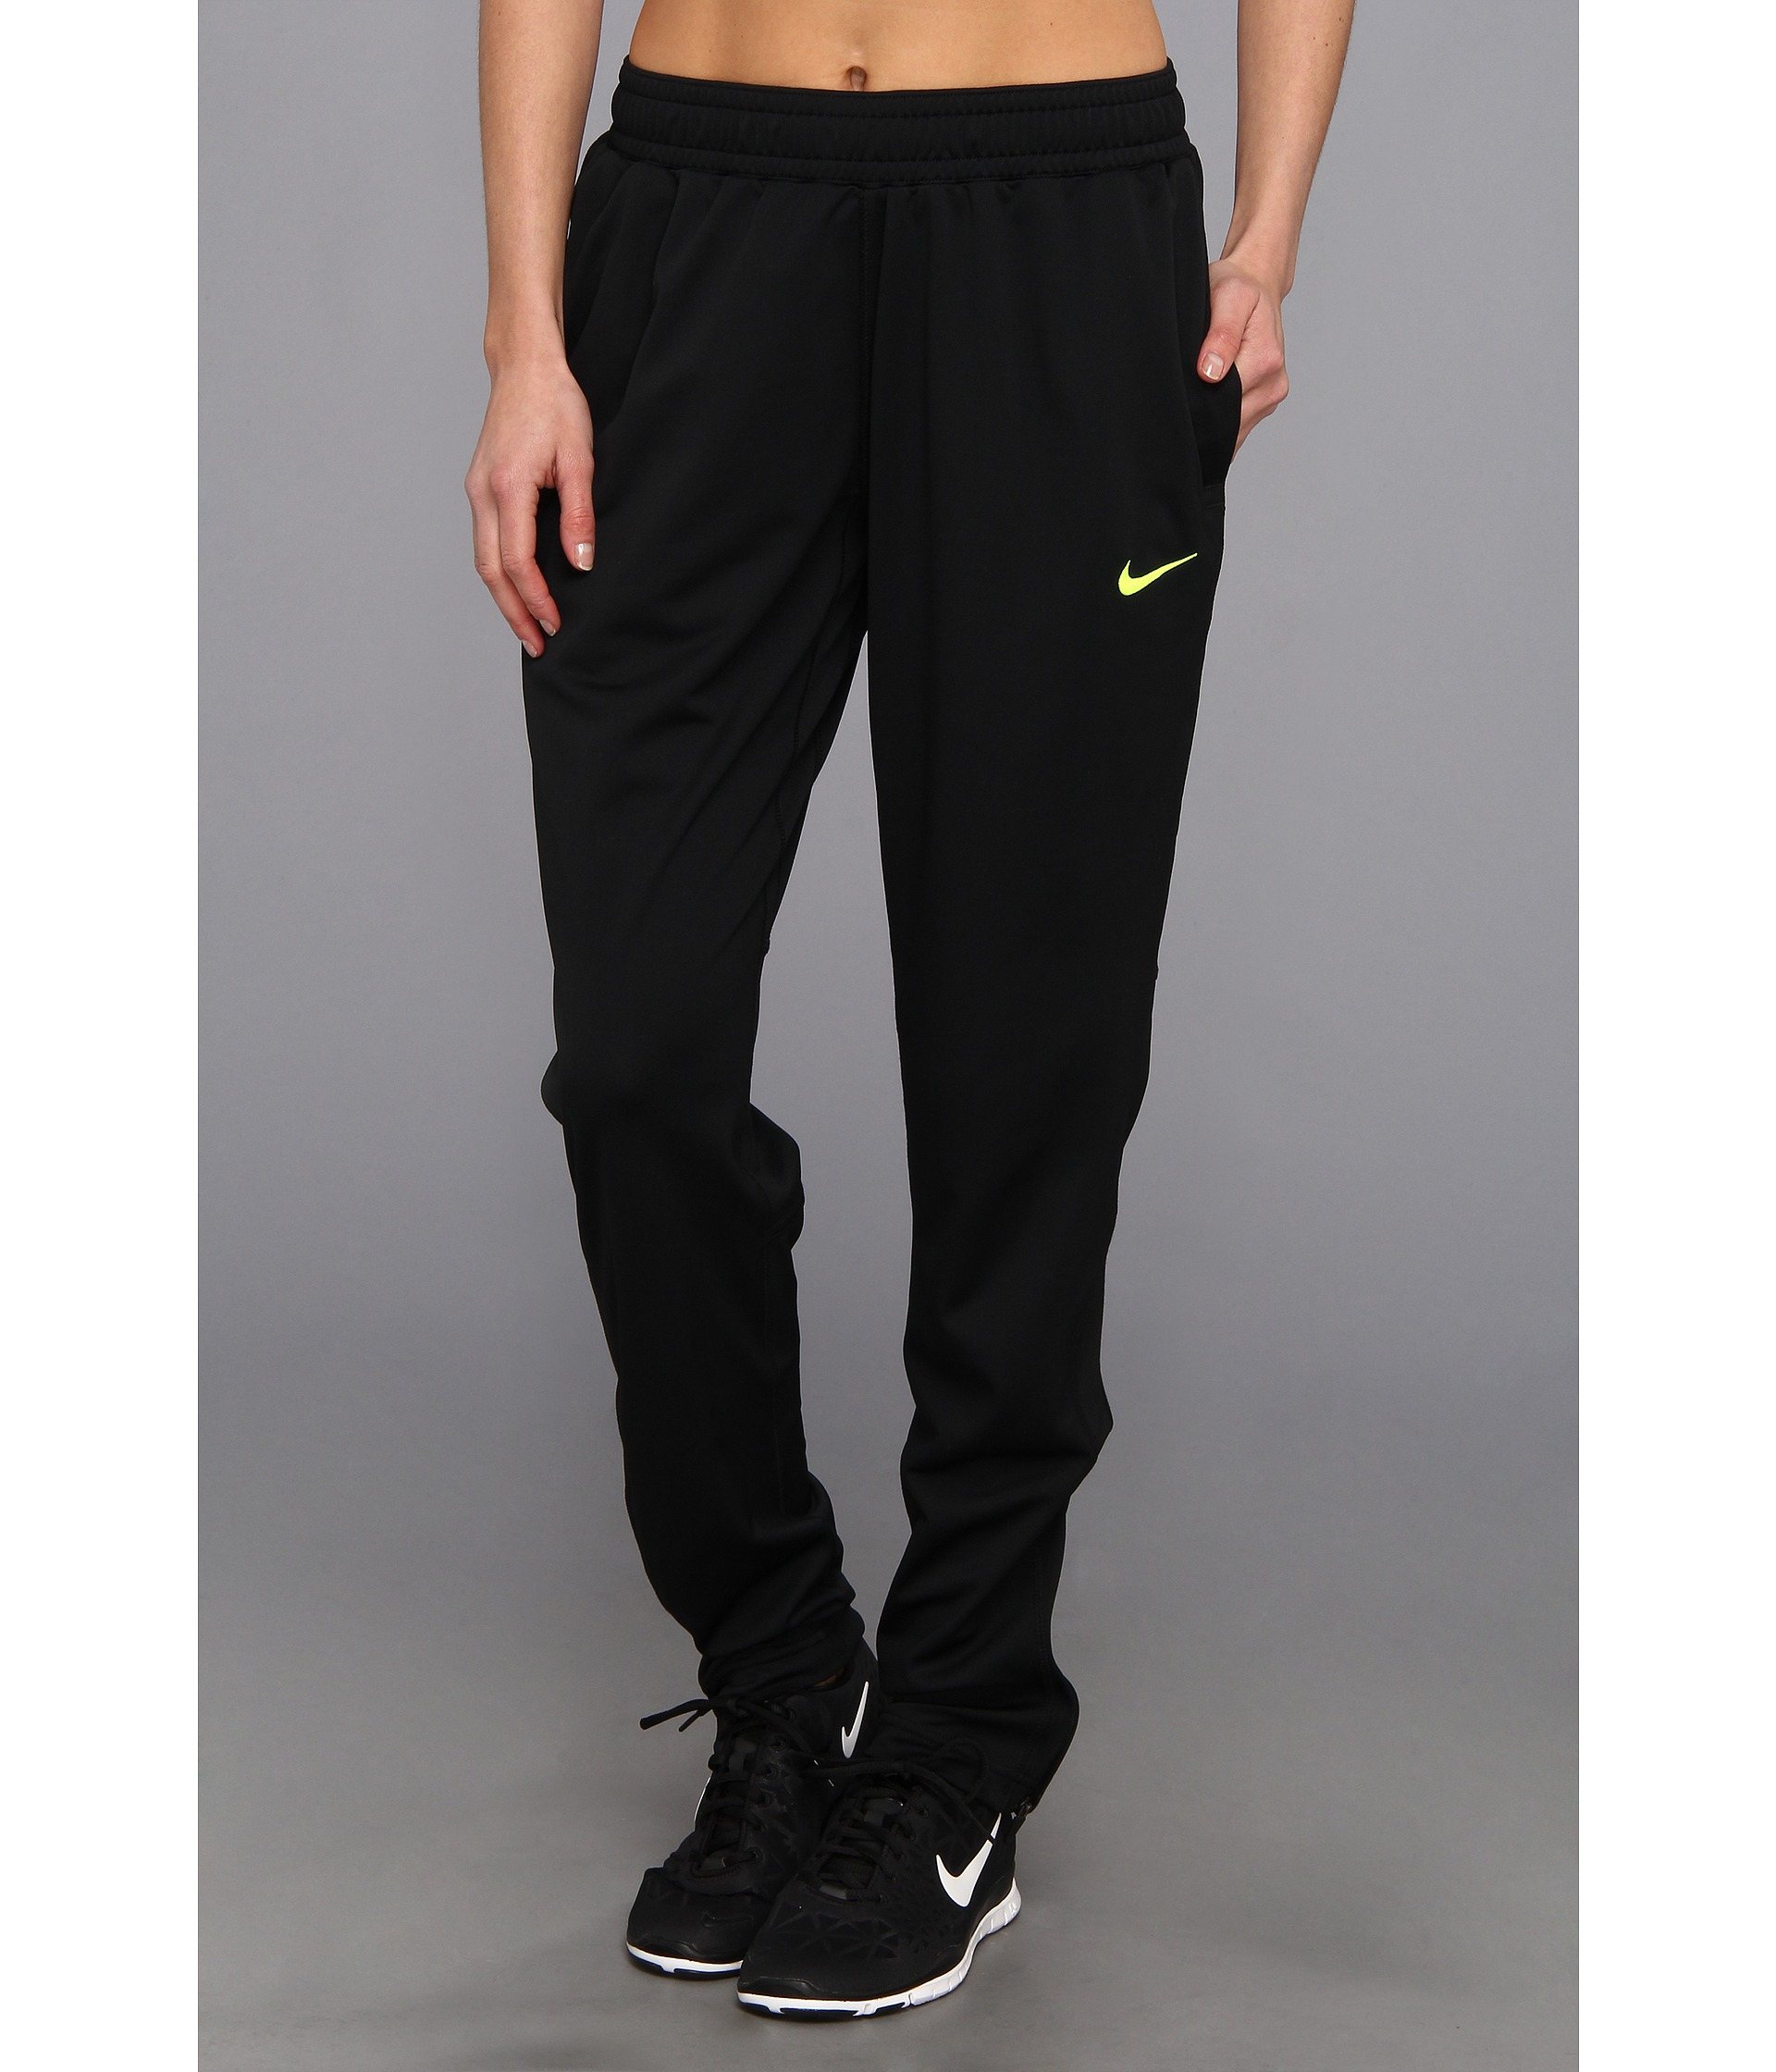 Book Of Nike Sweatpants For Women In Australia By Liam u2013 playzoa.com